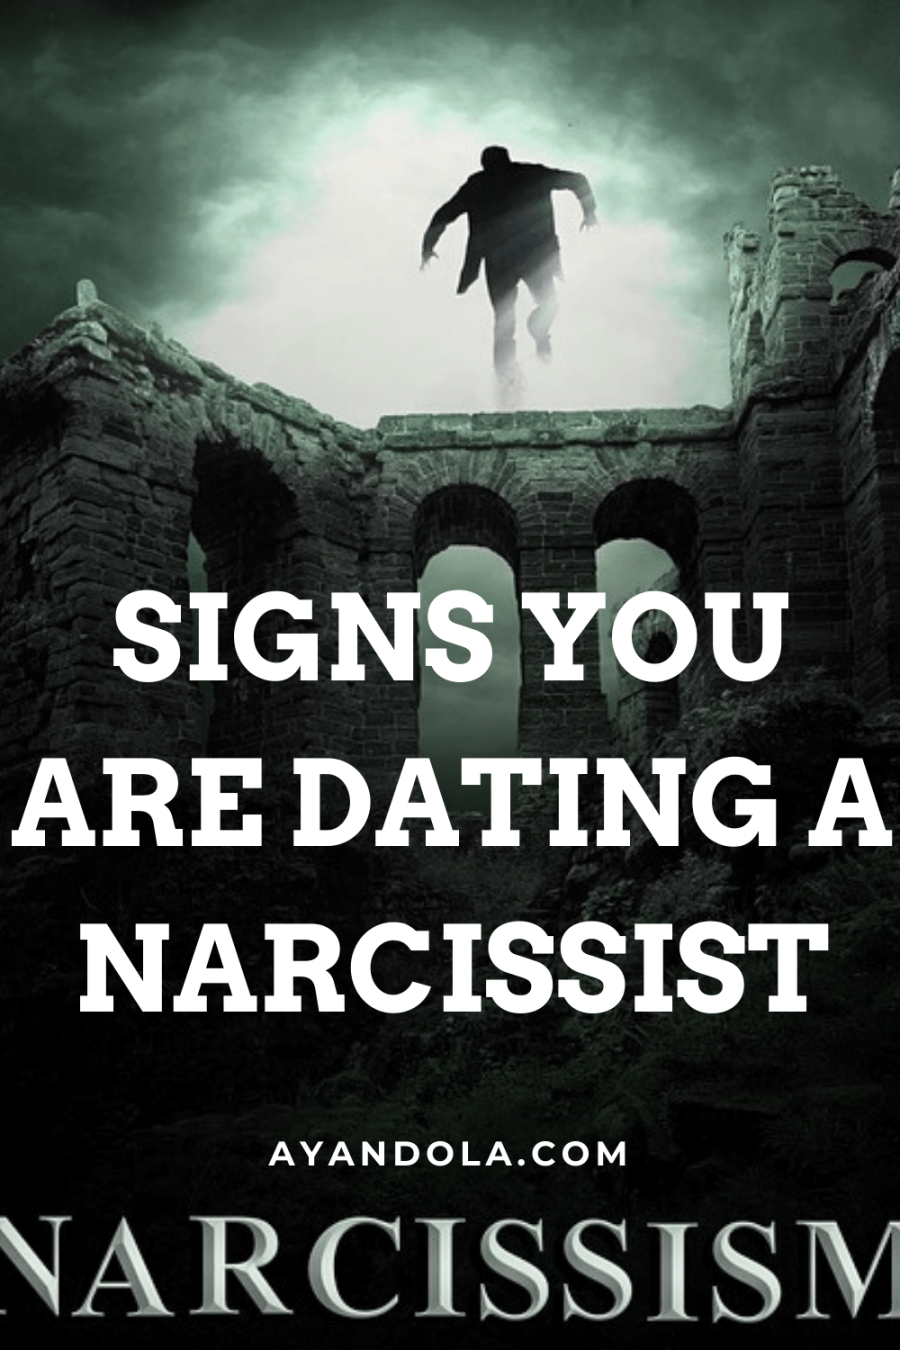 signs you are dating a narcissist